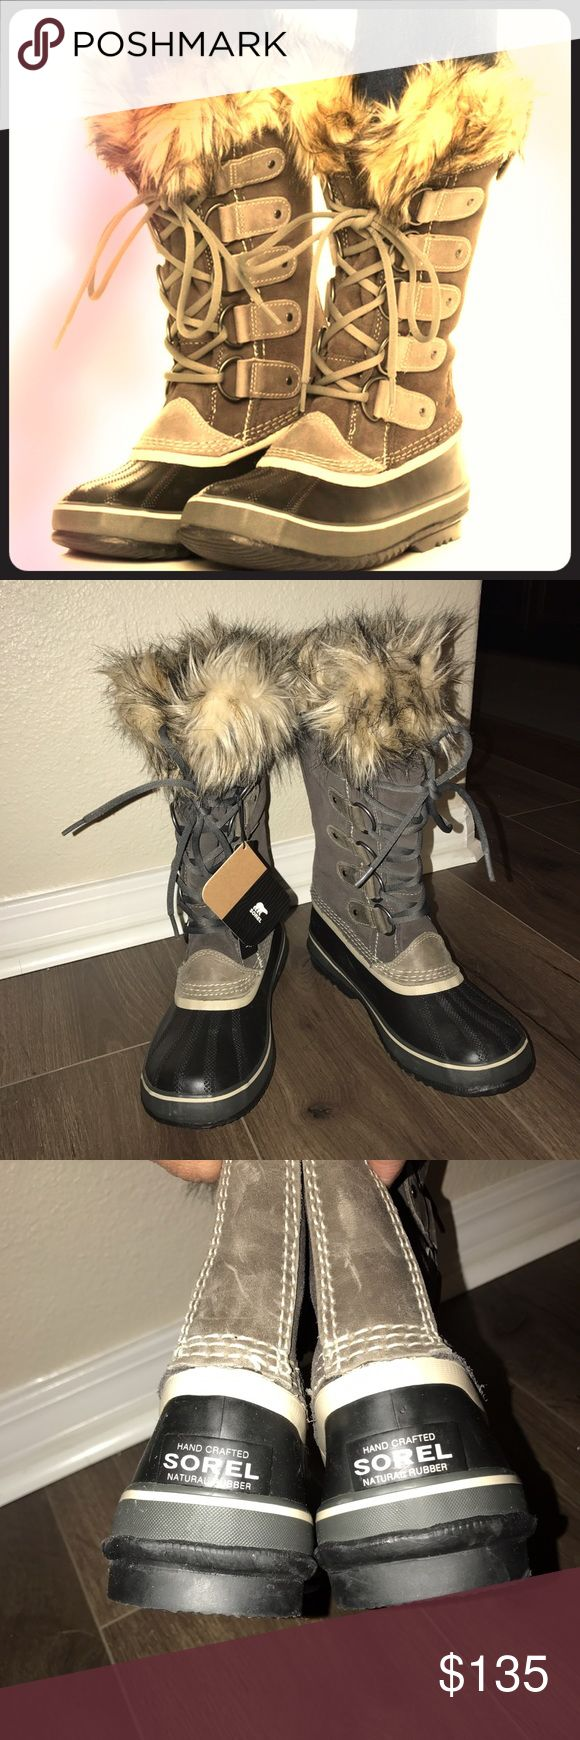 Sorel Joan of Arctic Boots NWT NWT. Never worn. Sorel Joan of Arctic Boots.   Size 8 or Eur 40. NO BOX, Hence the lower sale price. Sorel Shoes Winter & Rain Boots